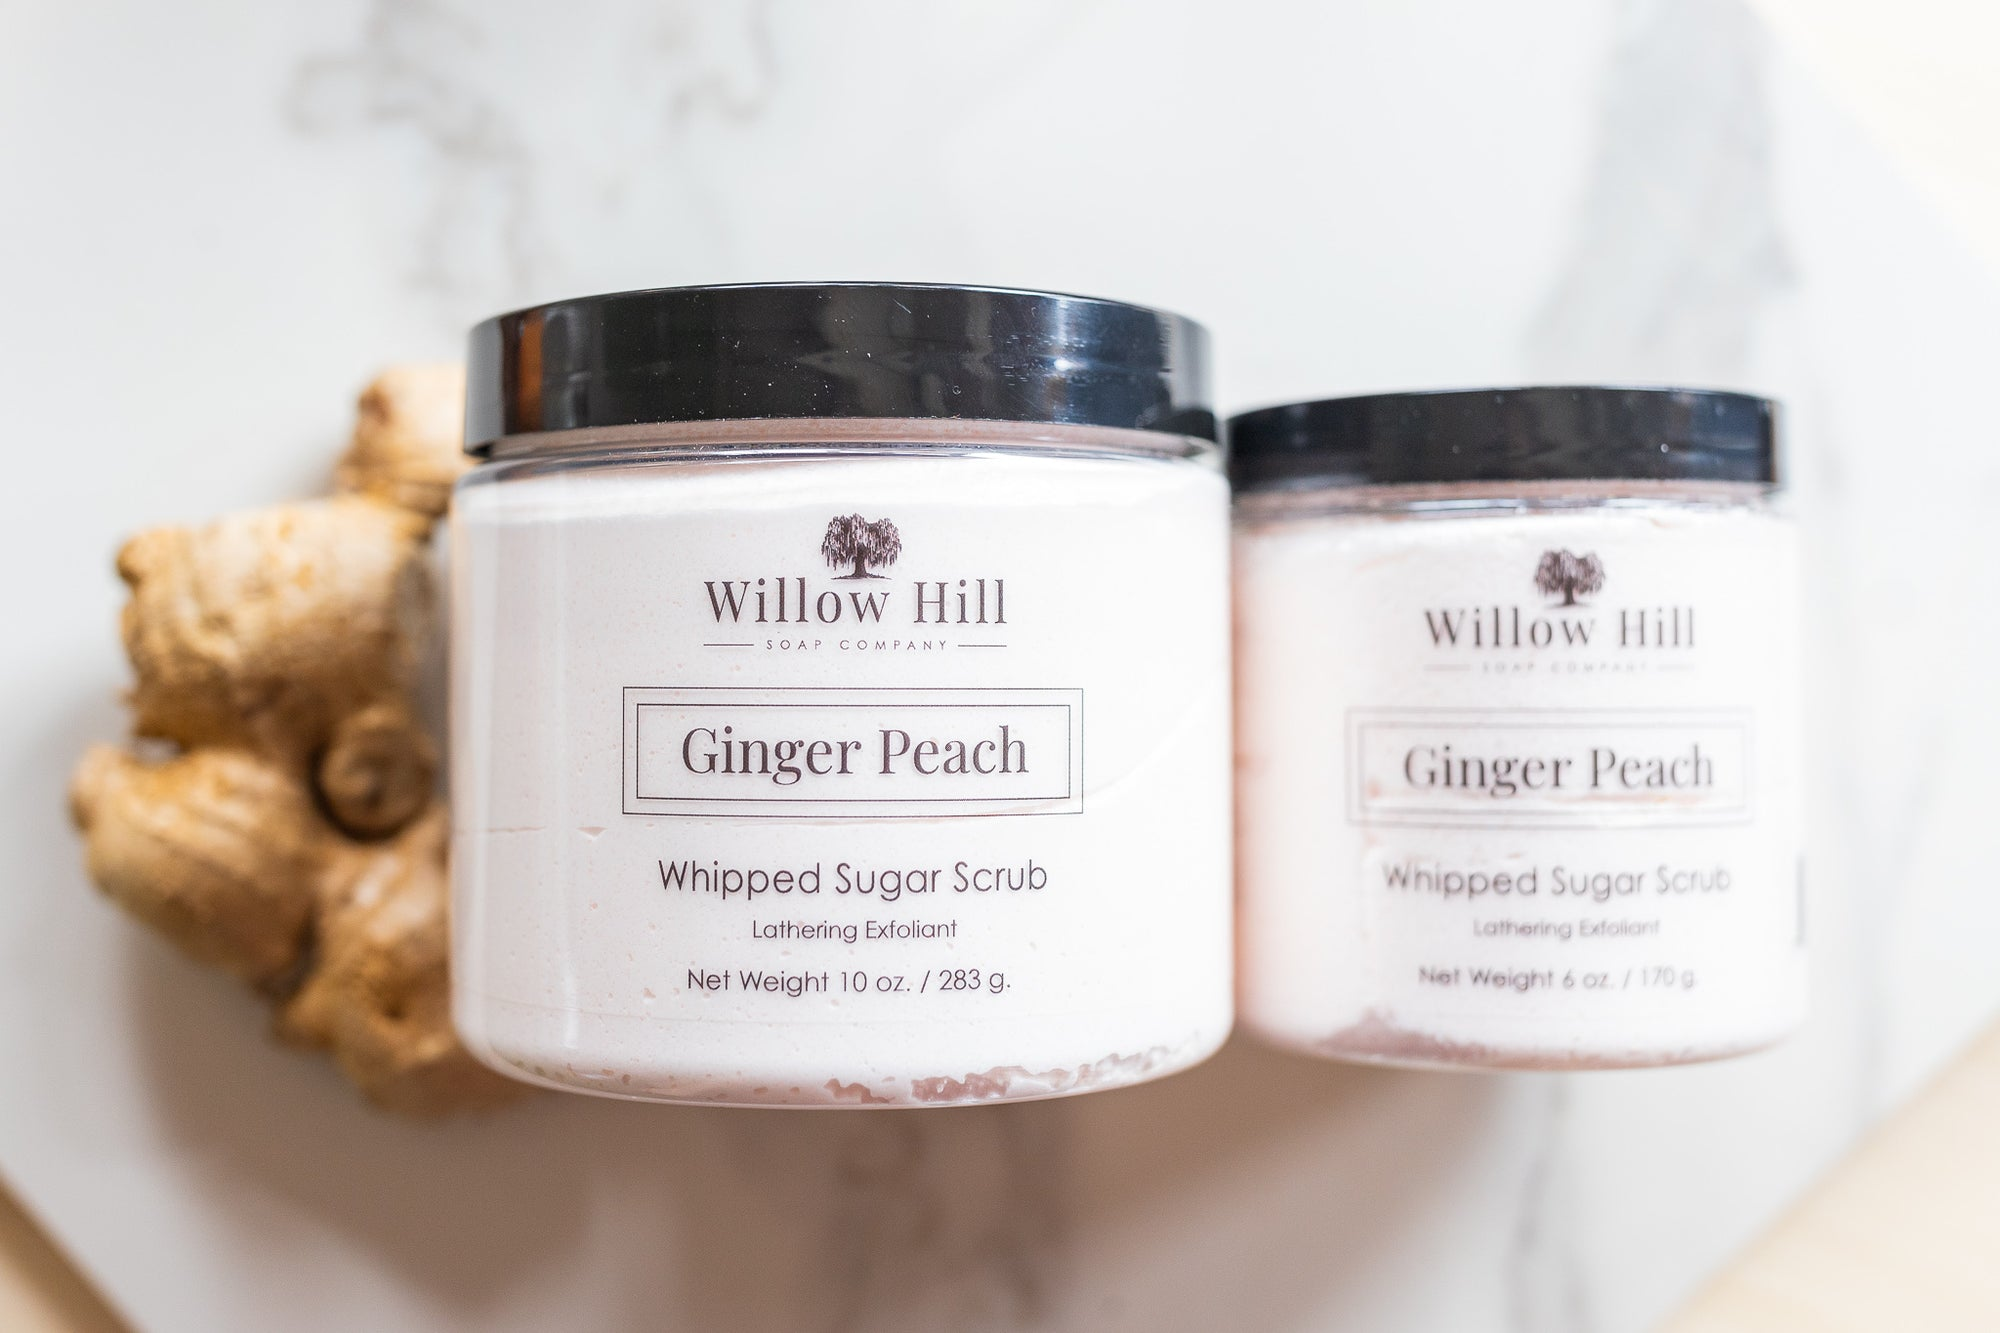 Ginger Peach Whipped Sugar Scrub